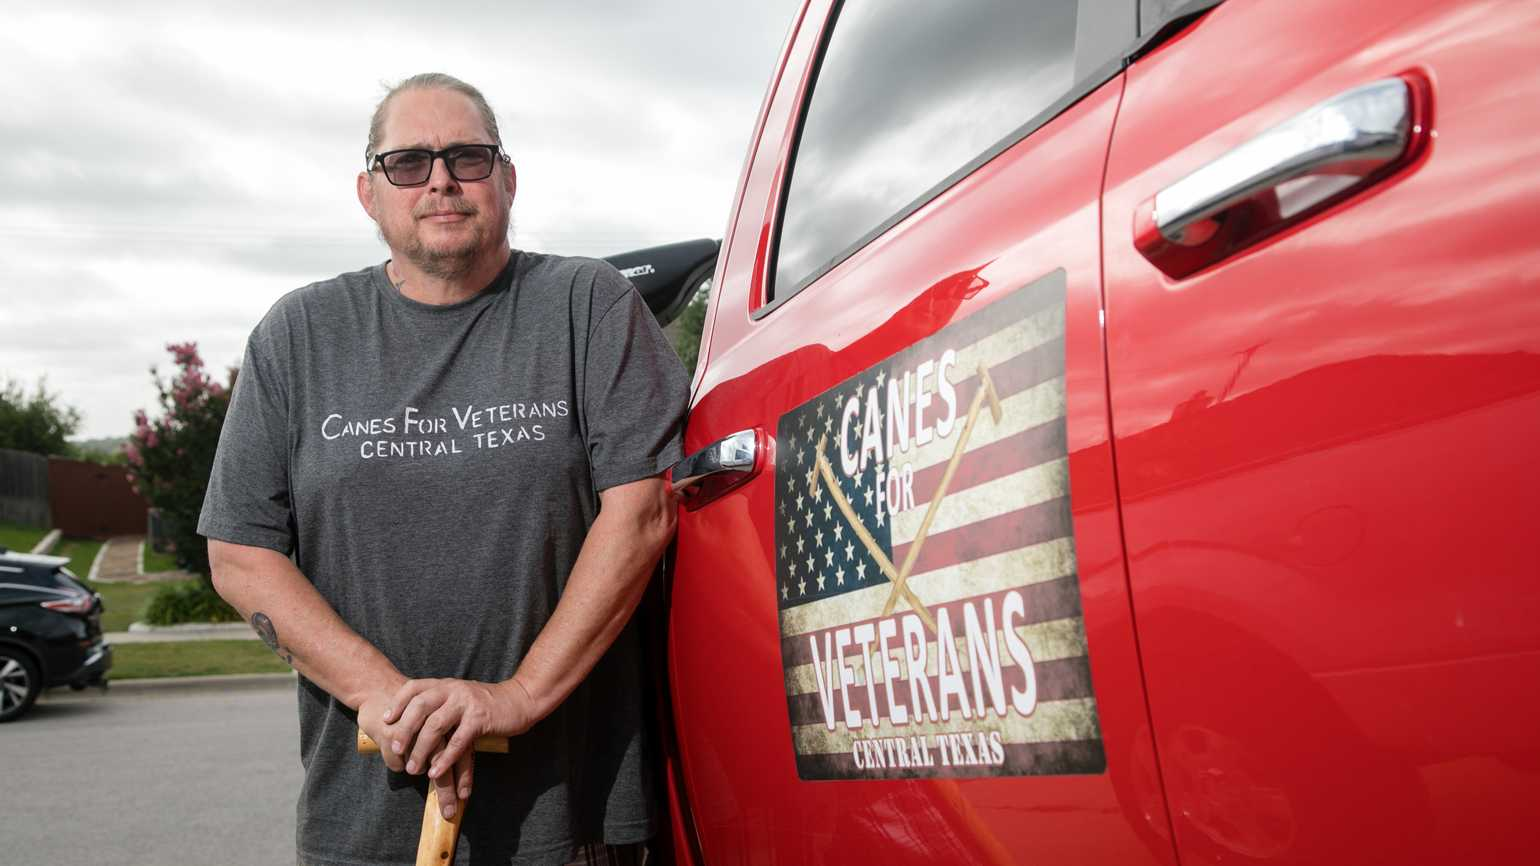 Jamie Willis runs Canes for Veterans Central Texas. Photo credit: Eric Guel